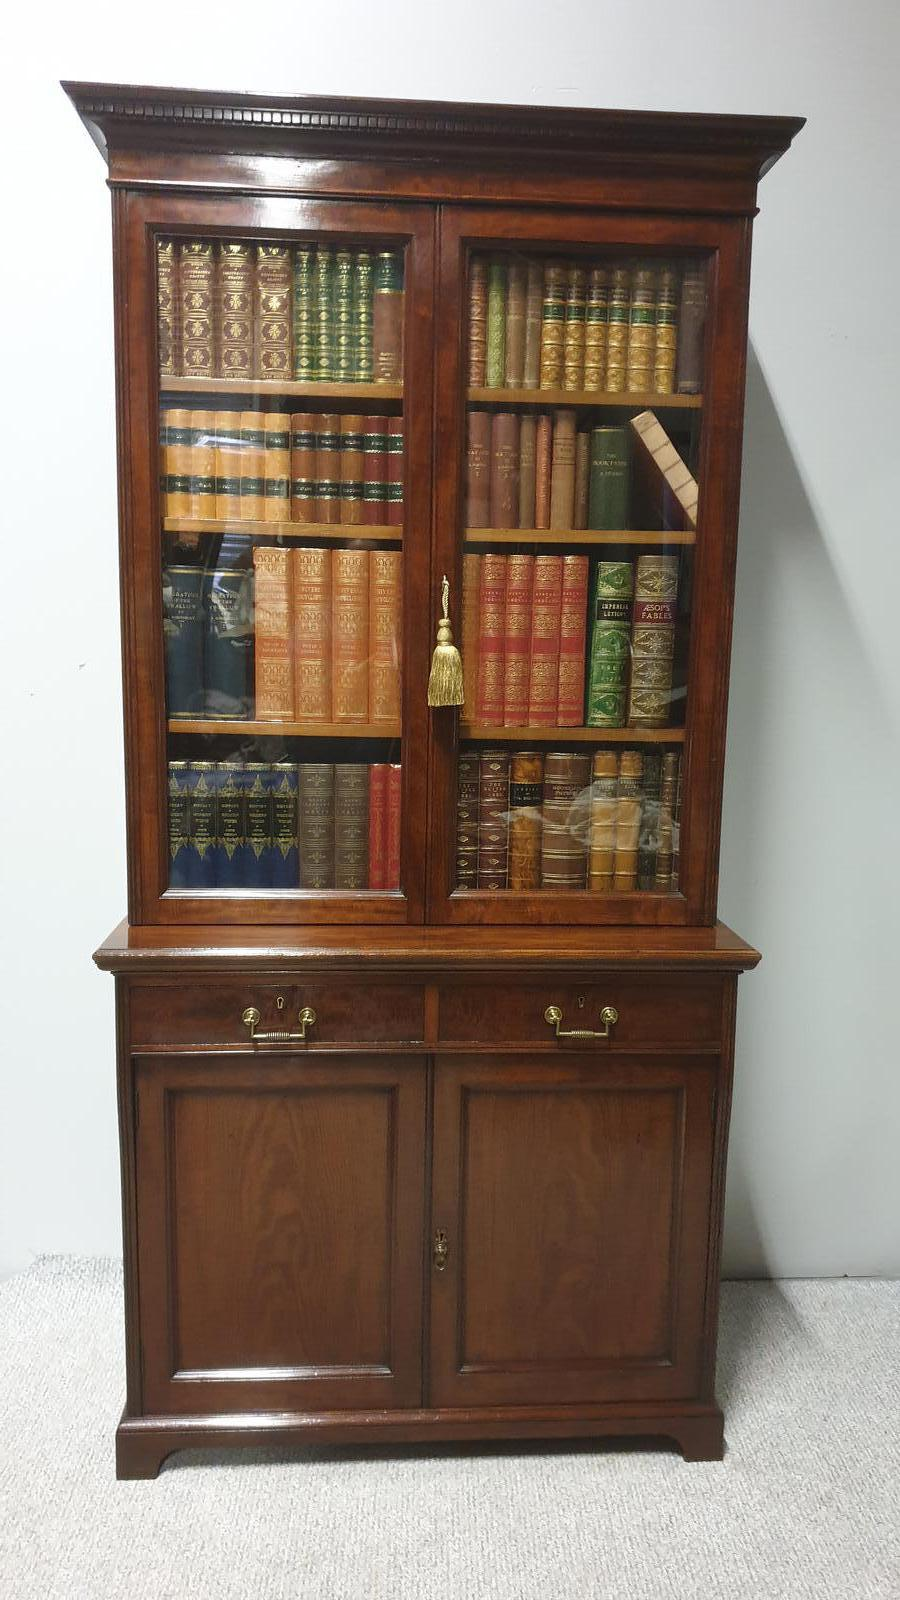 Top  Quality Bookcase of Small Proportions (1 of 1)